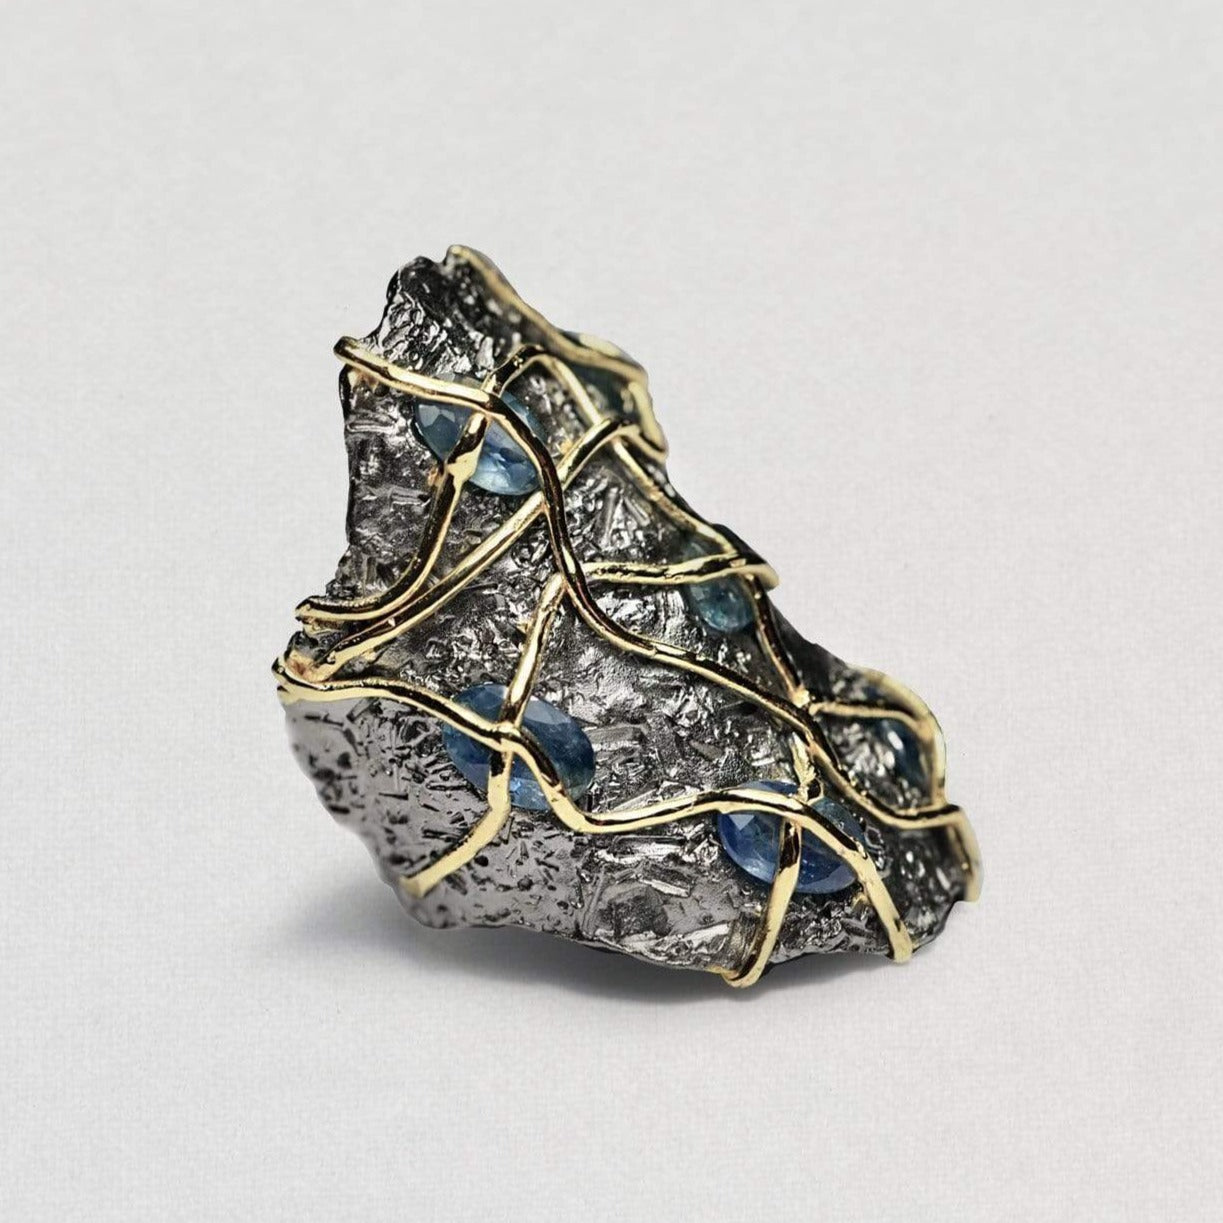 Avarina Ring, Gold, gray, Handmade, Rhodium, Sapphire, spo-disabled, StoneColor:DeepBlue, Style:Everyday, Type:StoneCandyWired Ring